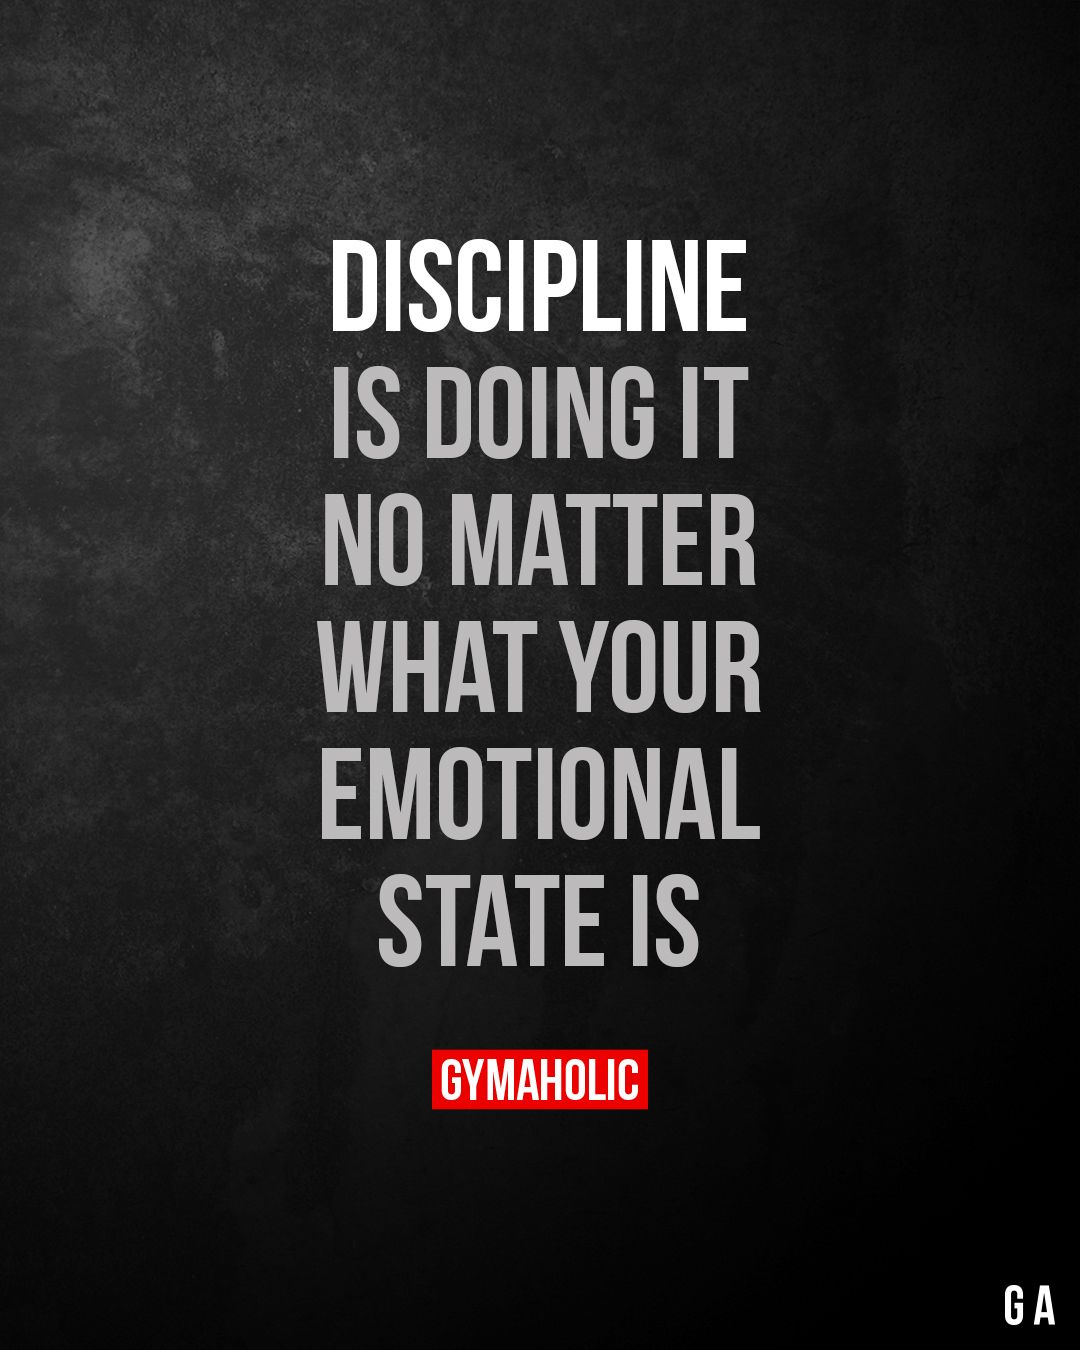 Discipline is doing it, no matter what your emotional state is.